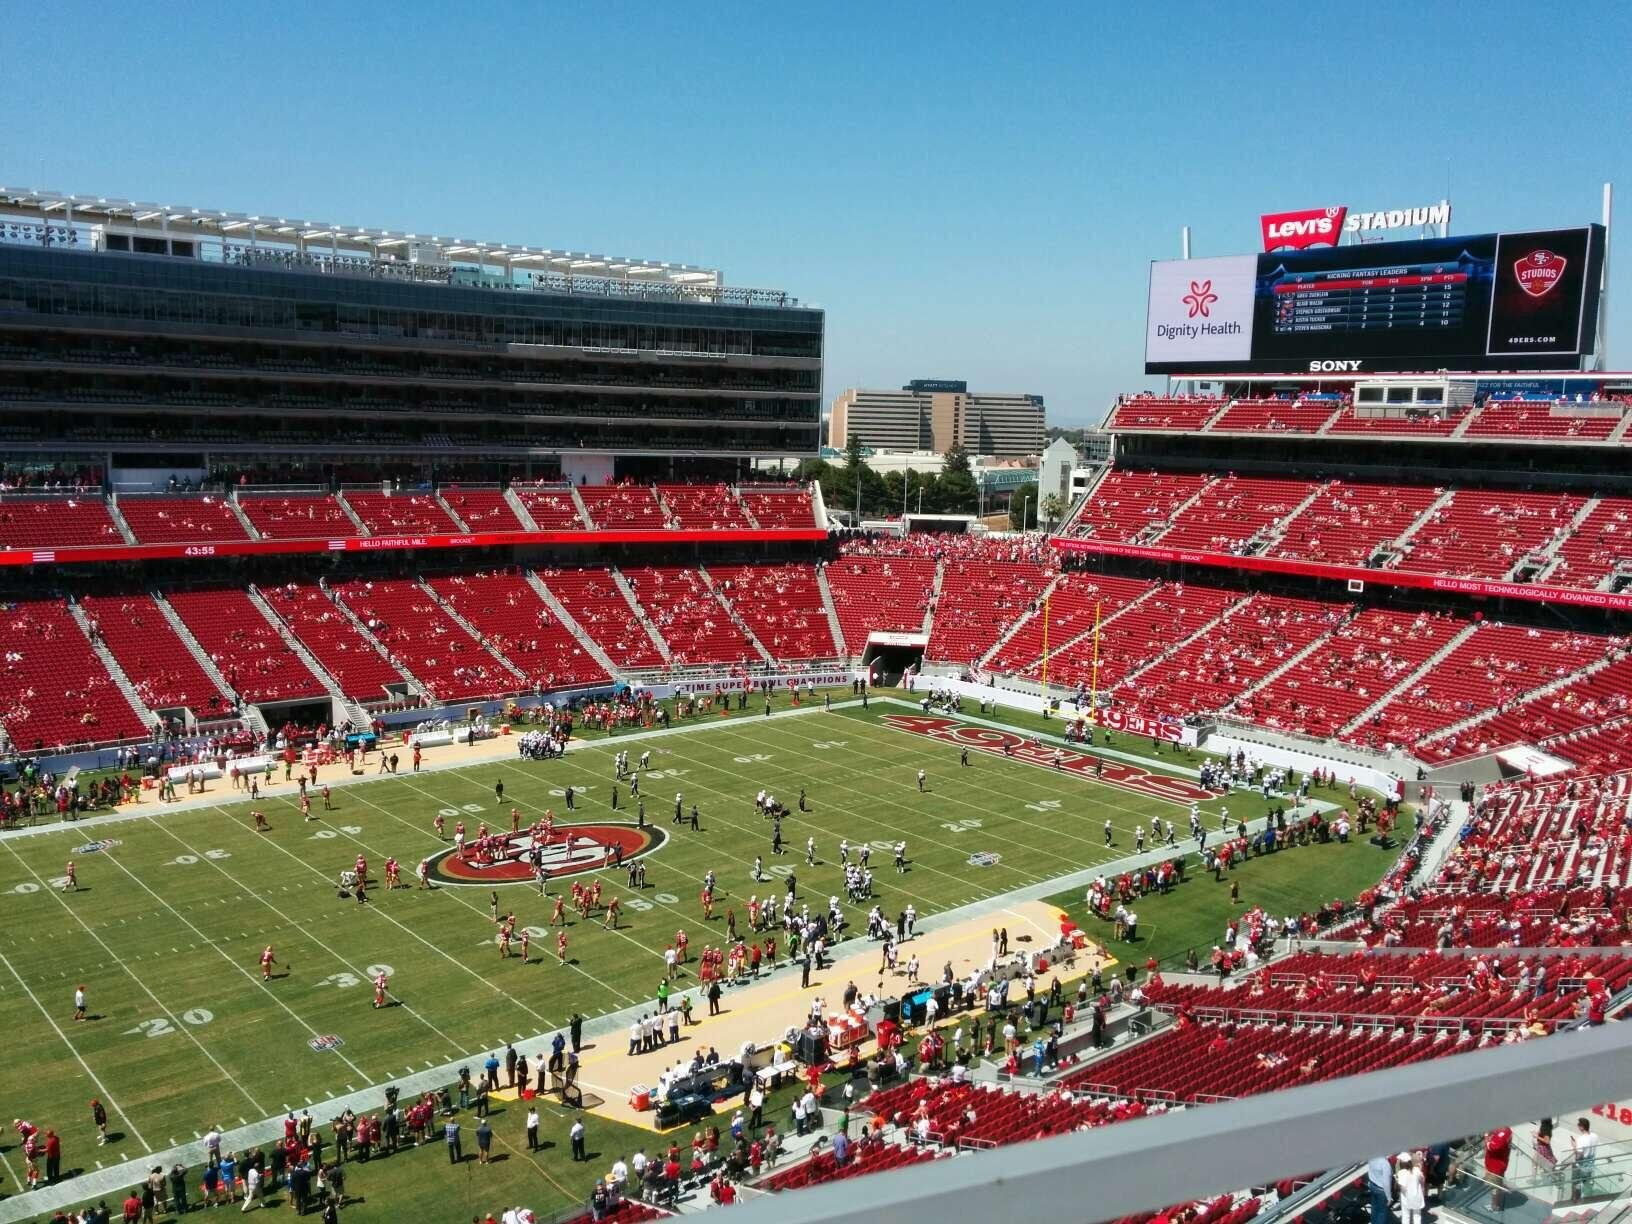 View from Section 318 at Levis Stadium